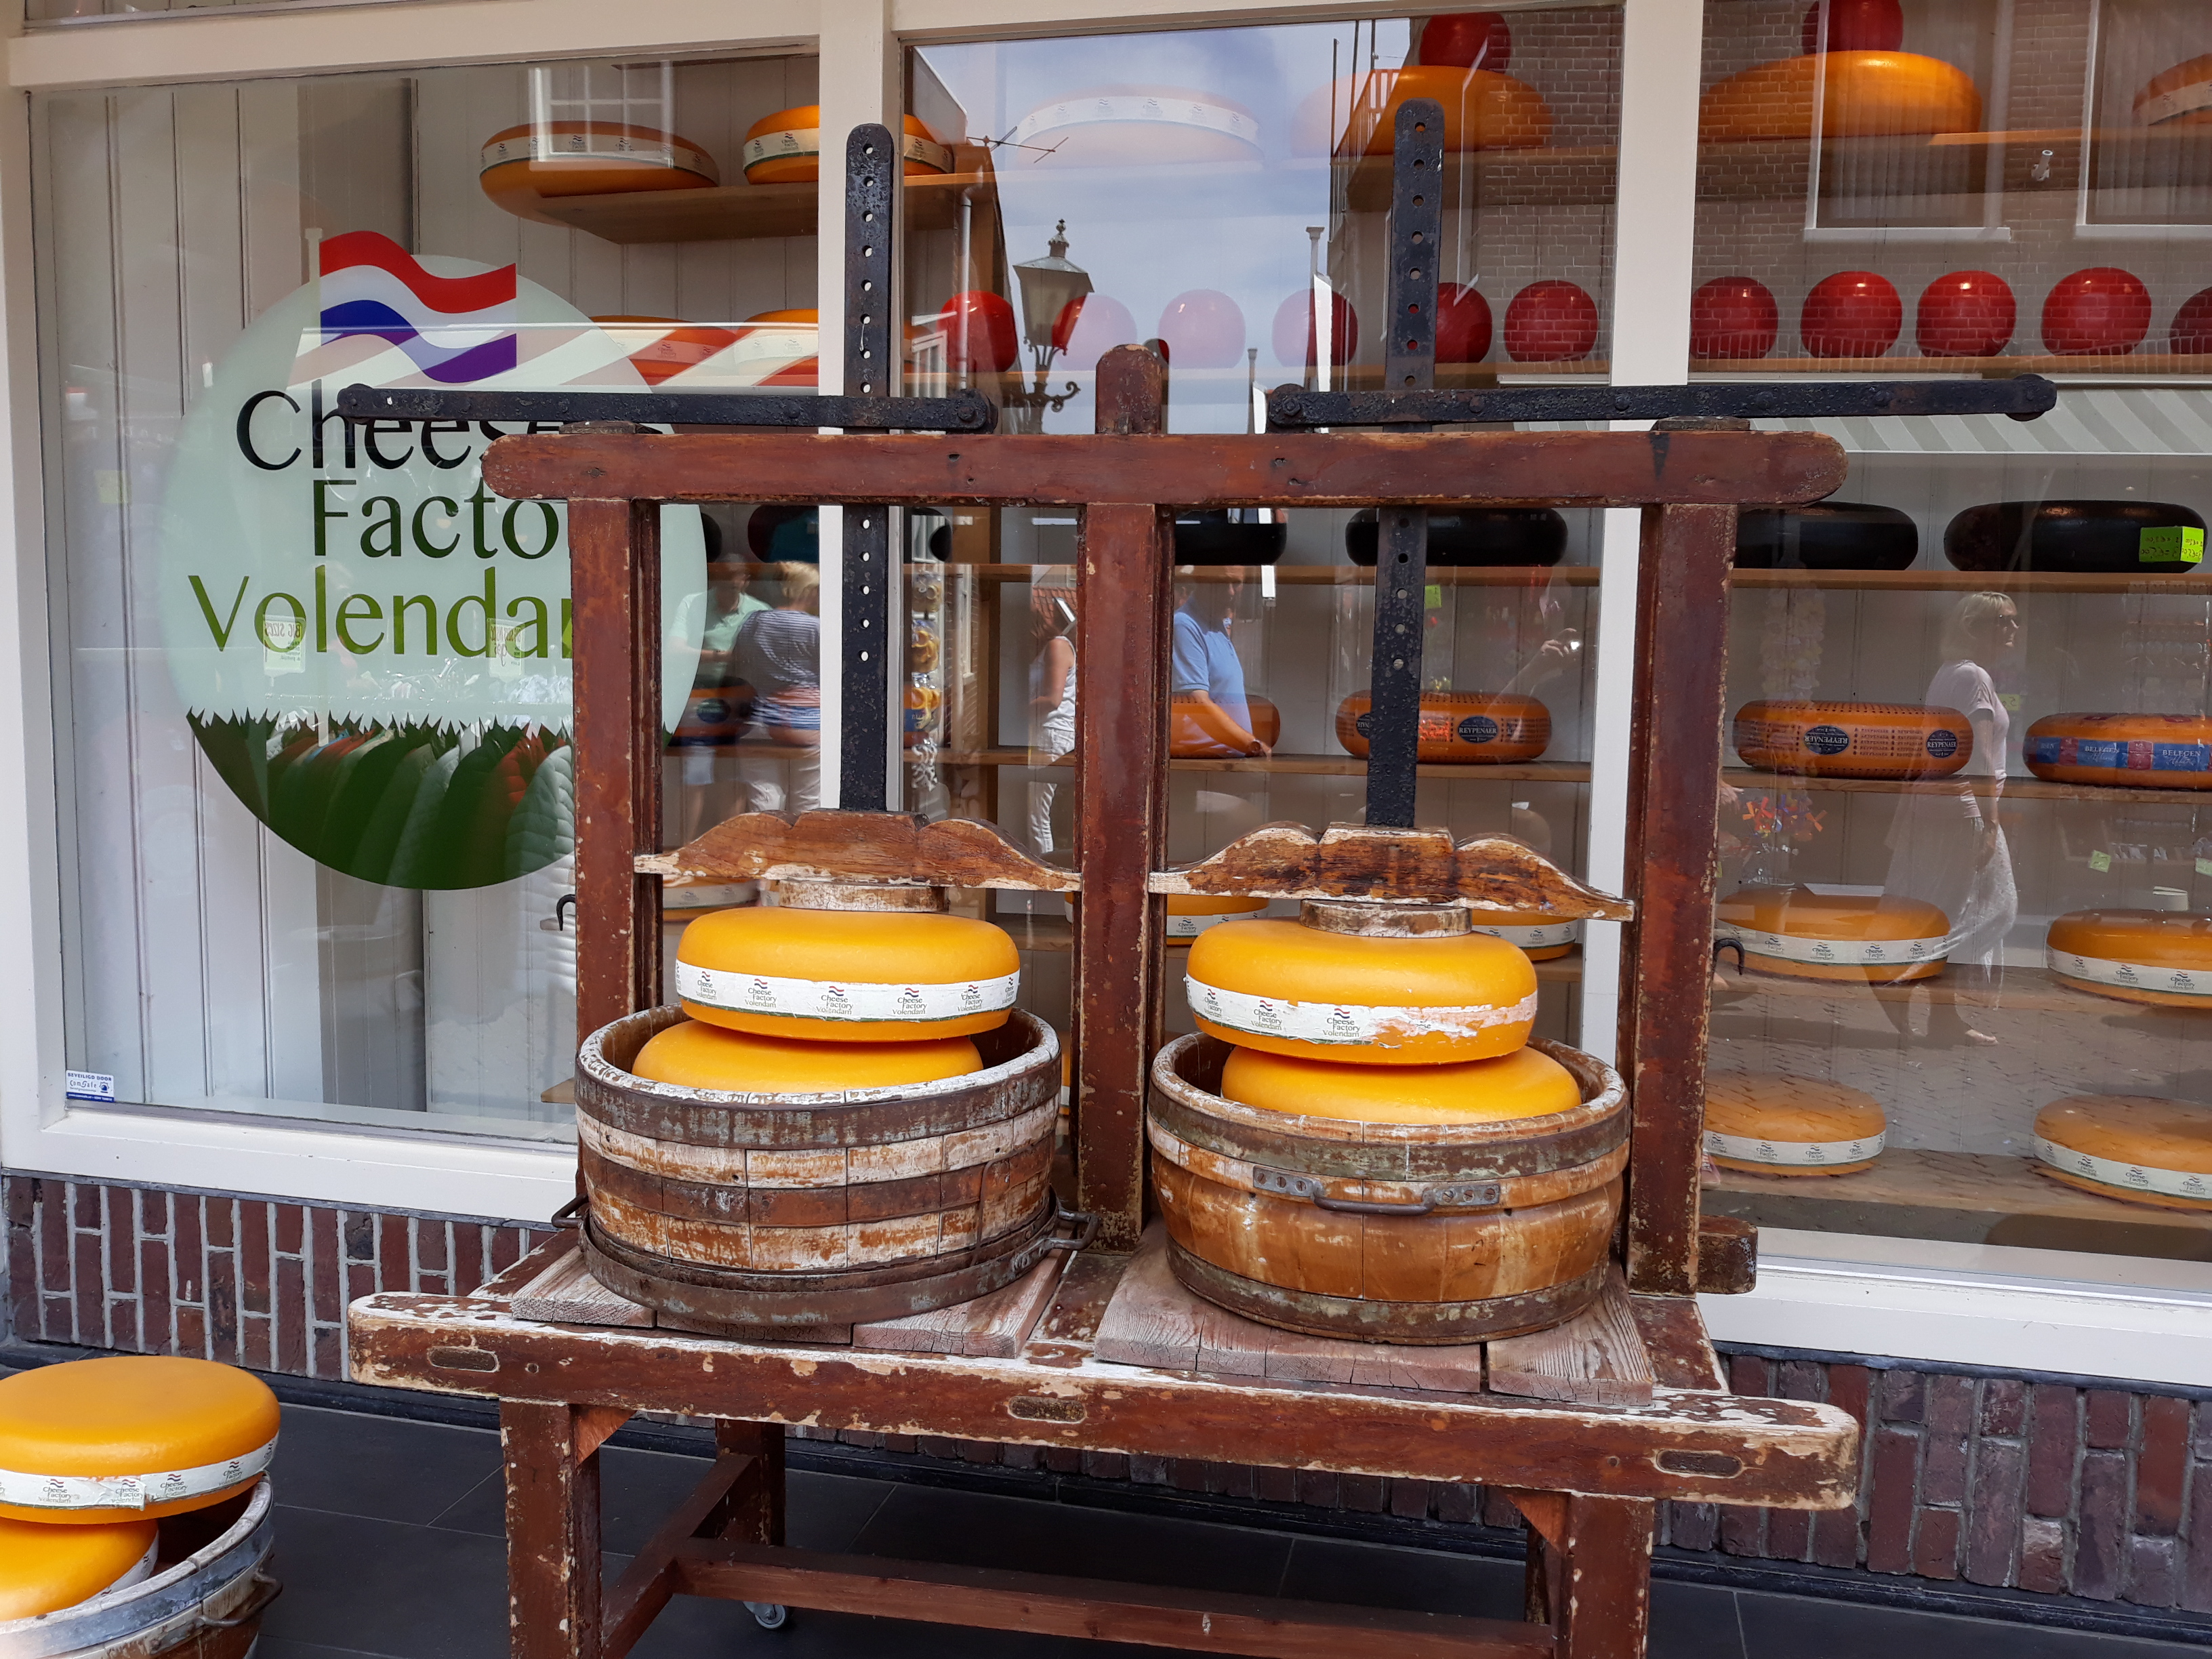 Cheese in Volendam